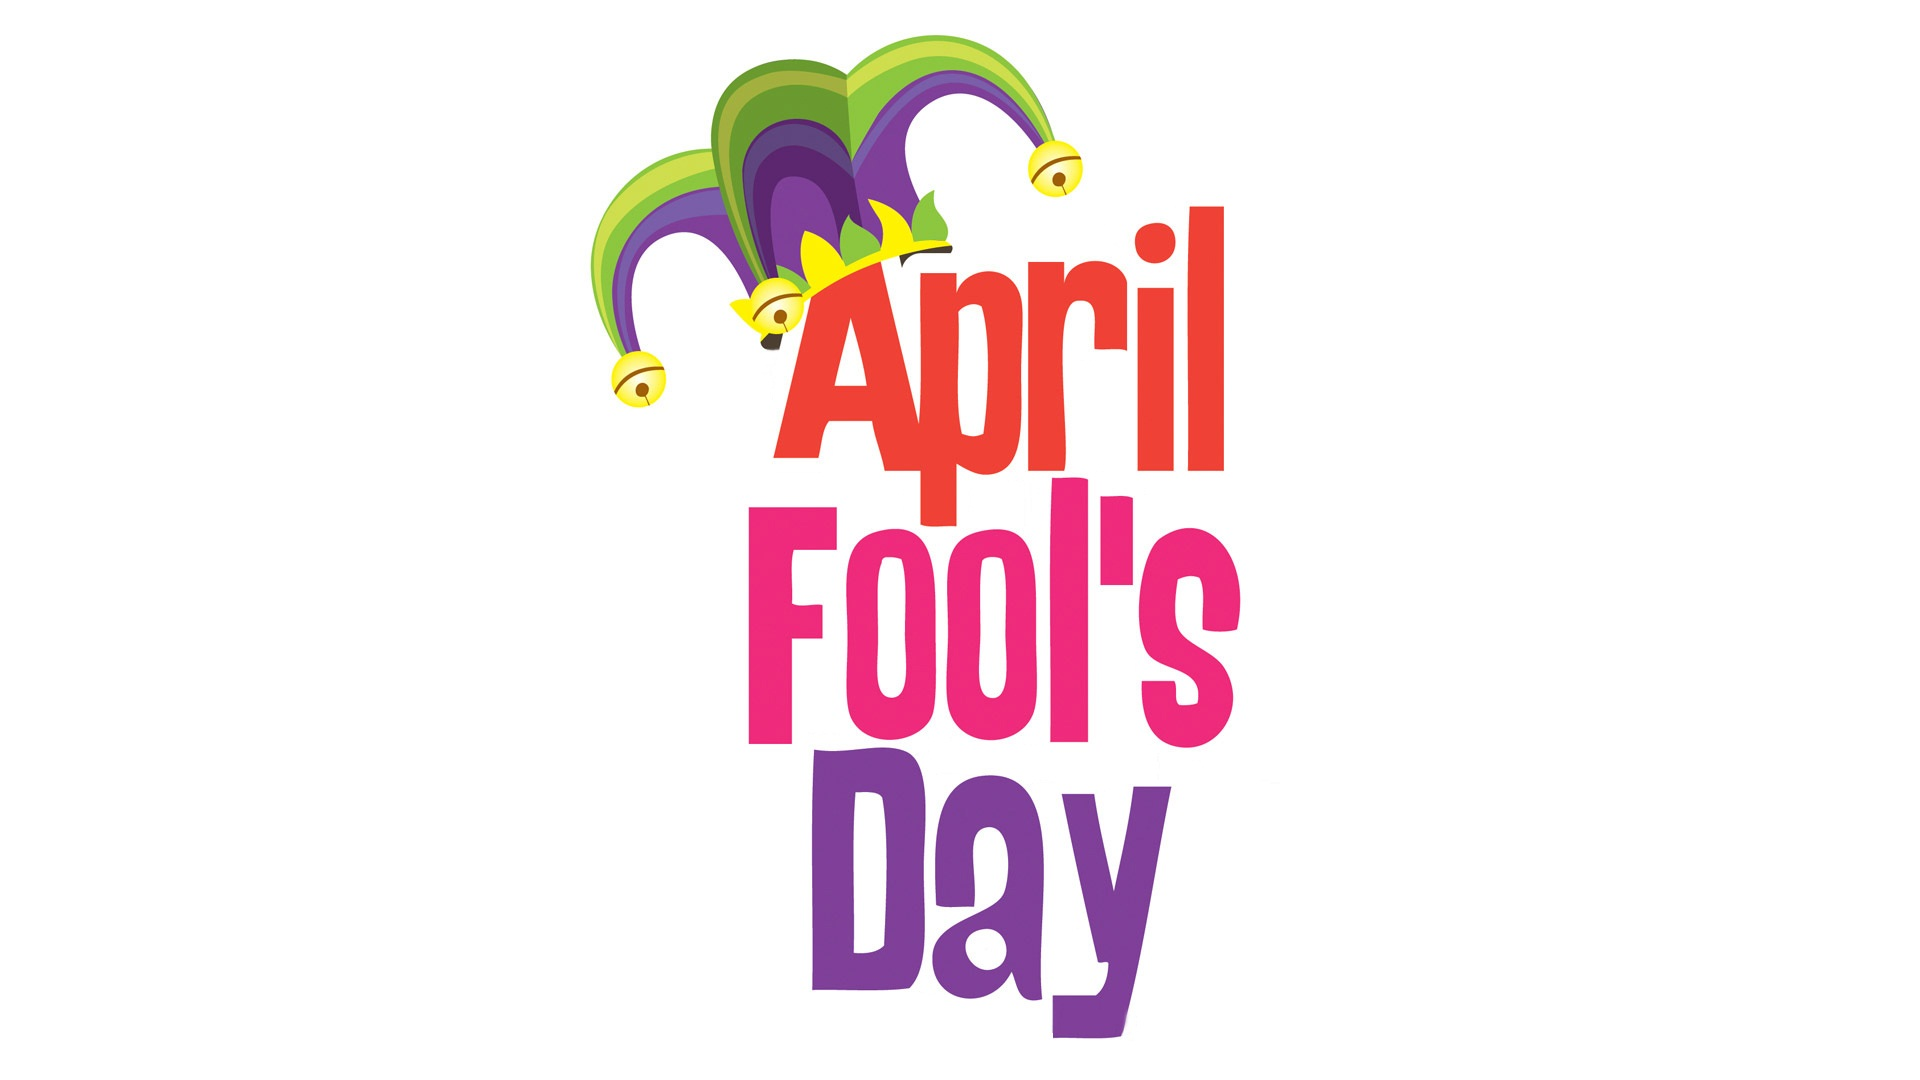 April fools day clipart wallpapers royalty free stock April Fools Day Clip Art [Best Collection] royalty free stock